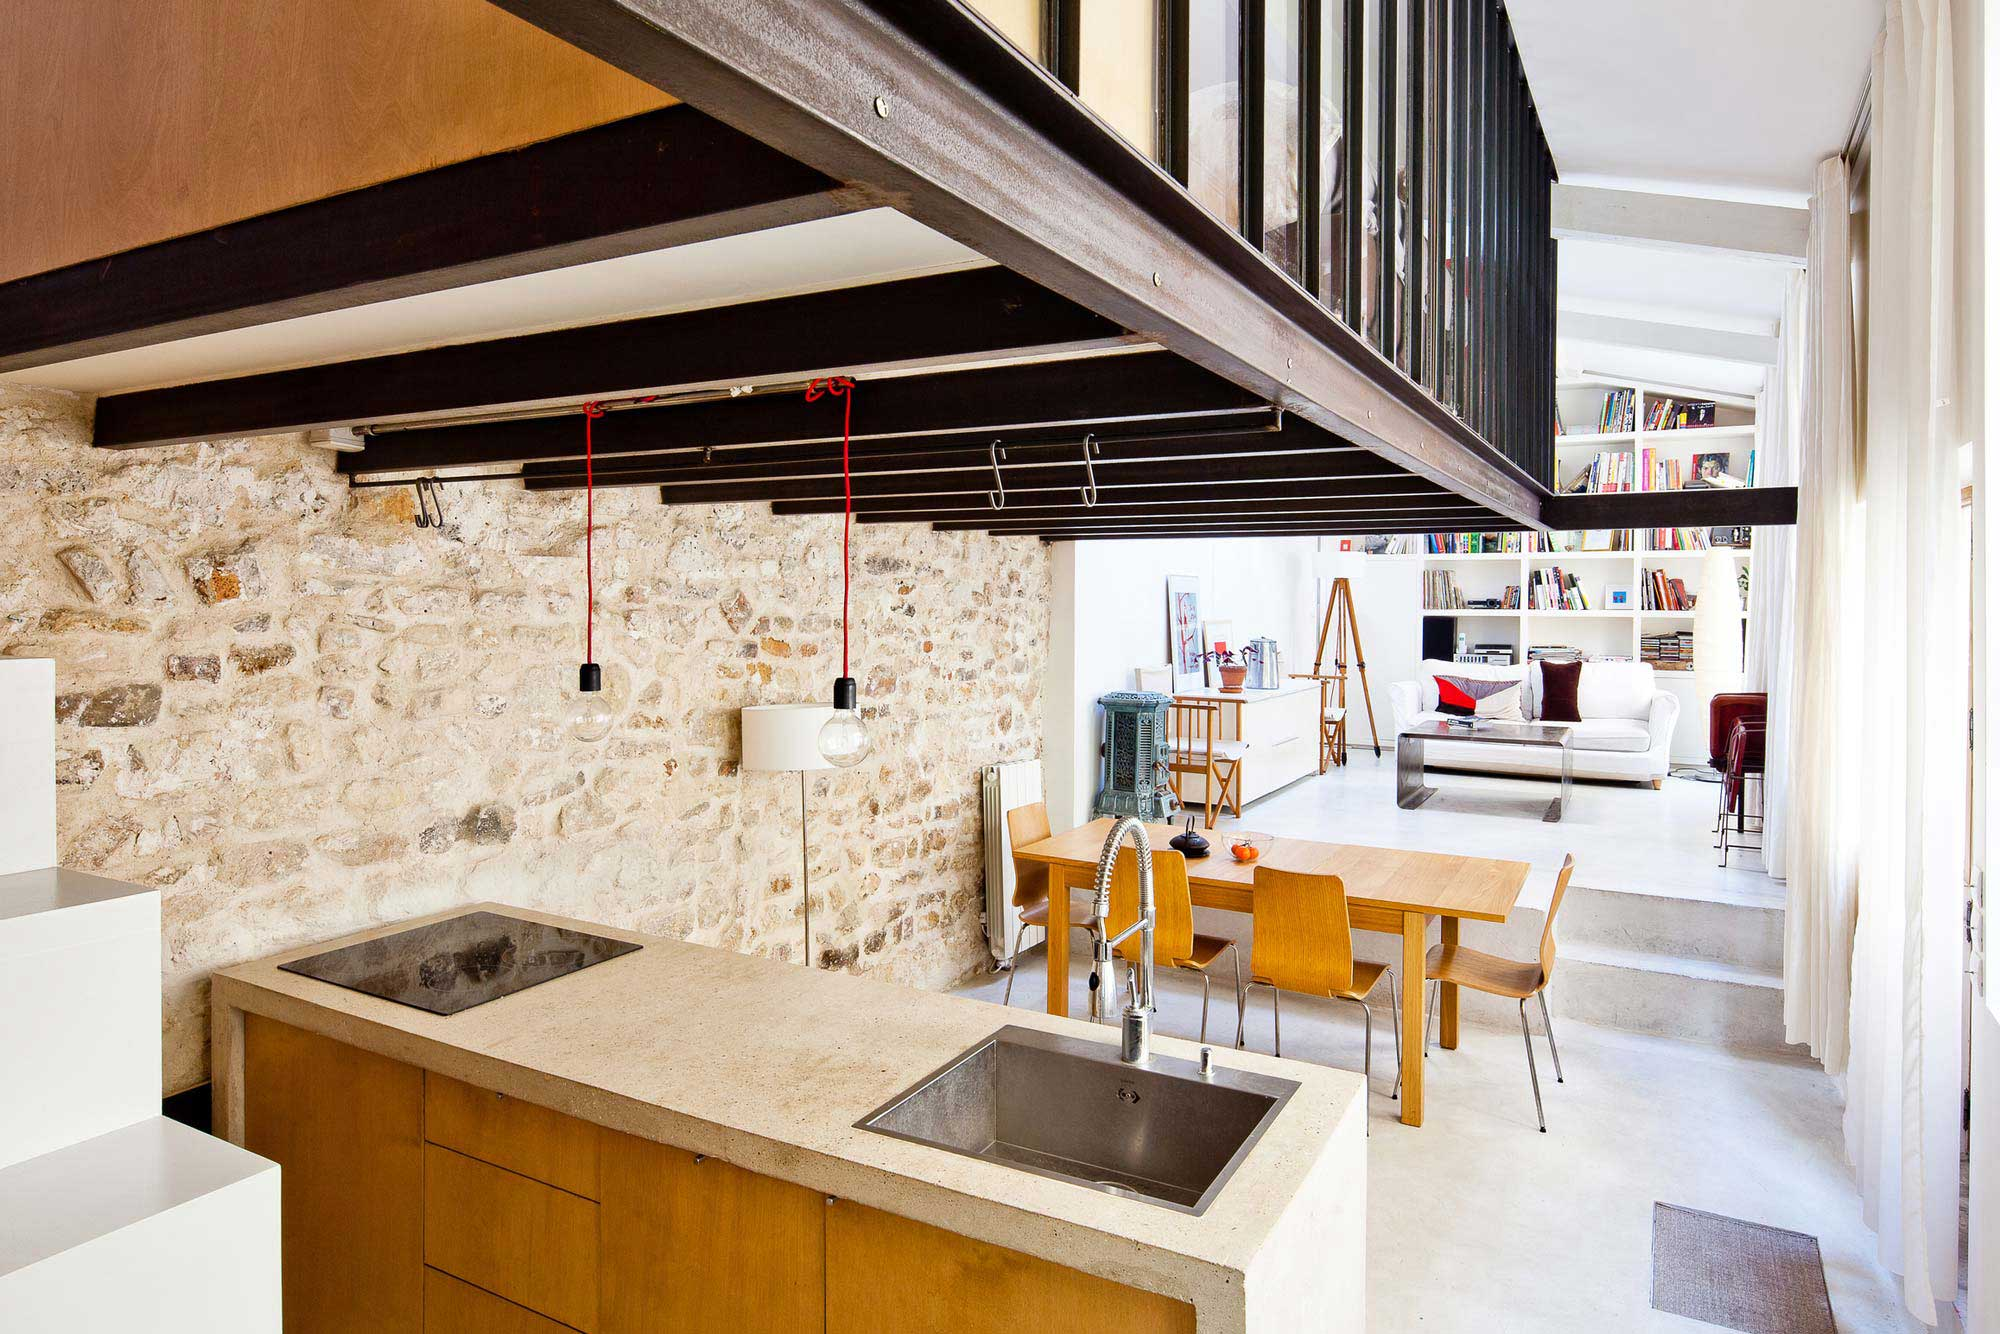 Atelier transform en loft paris for Loft a acheter paris